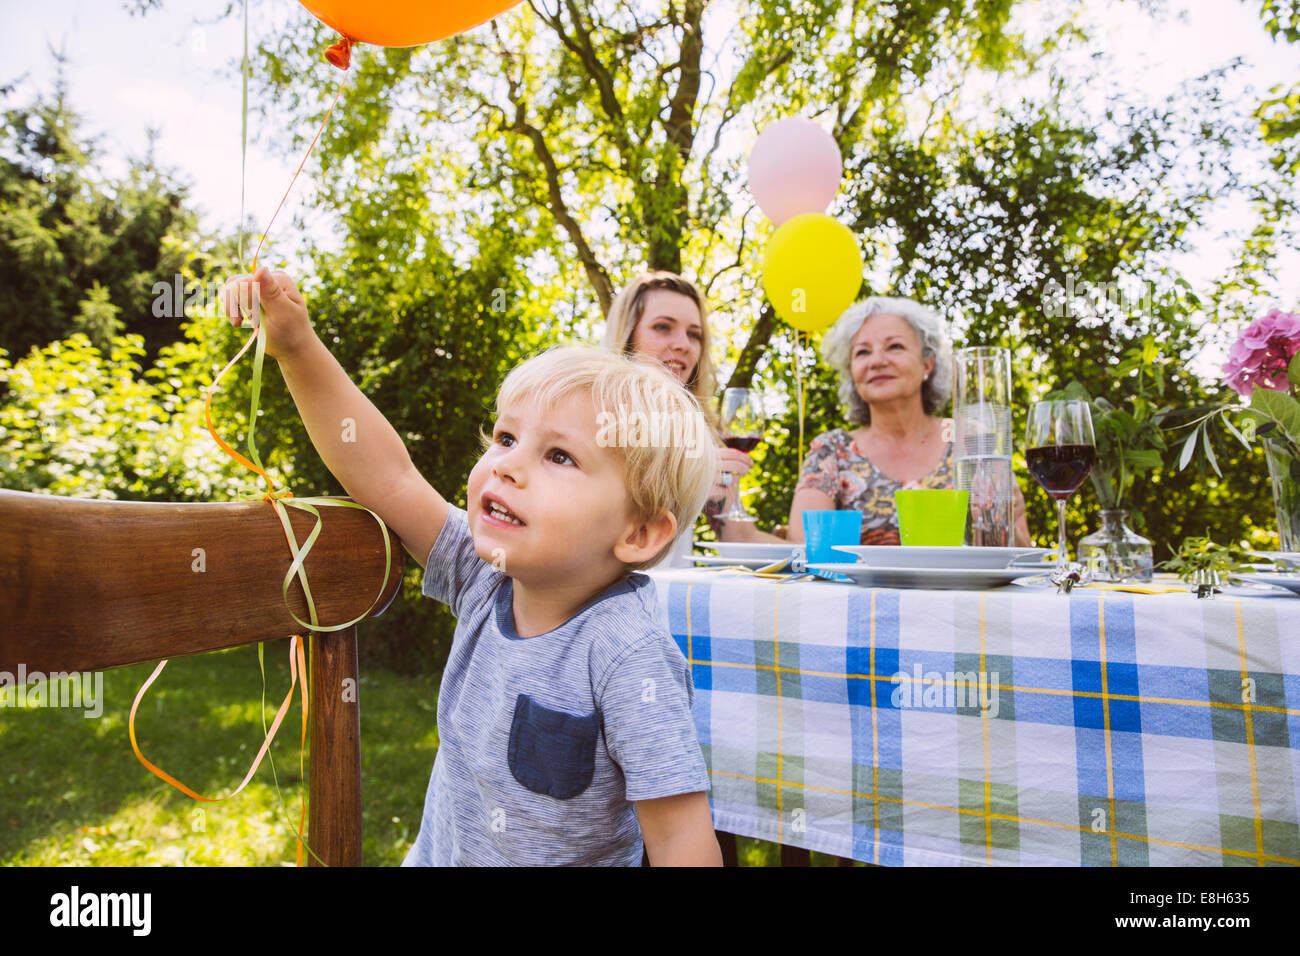 Boy at table with family of three generations in garden - Stock Image